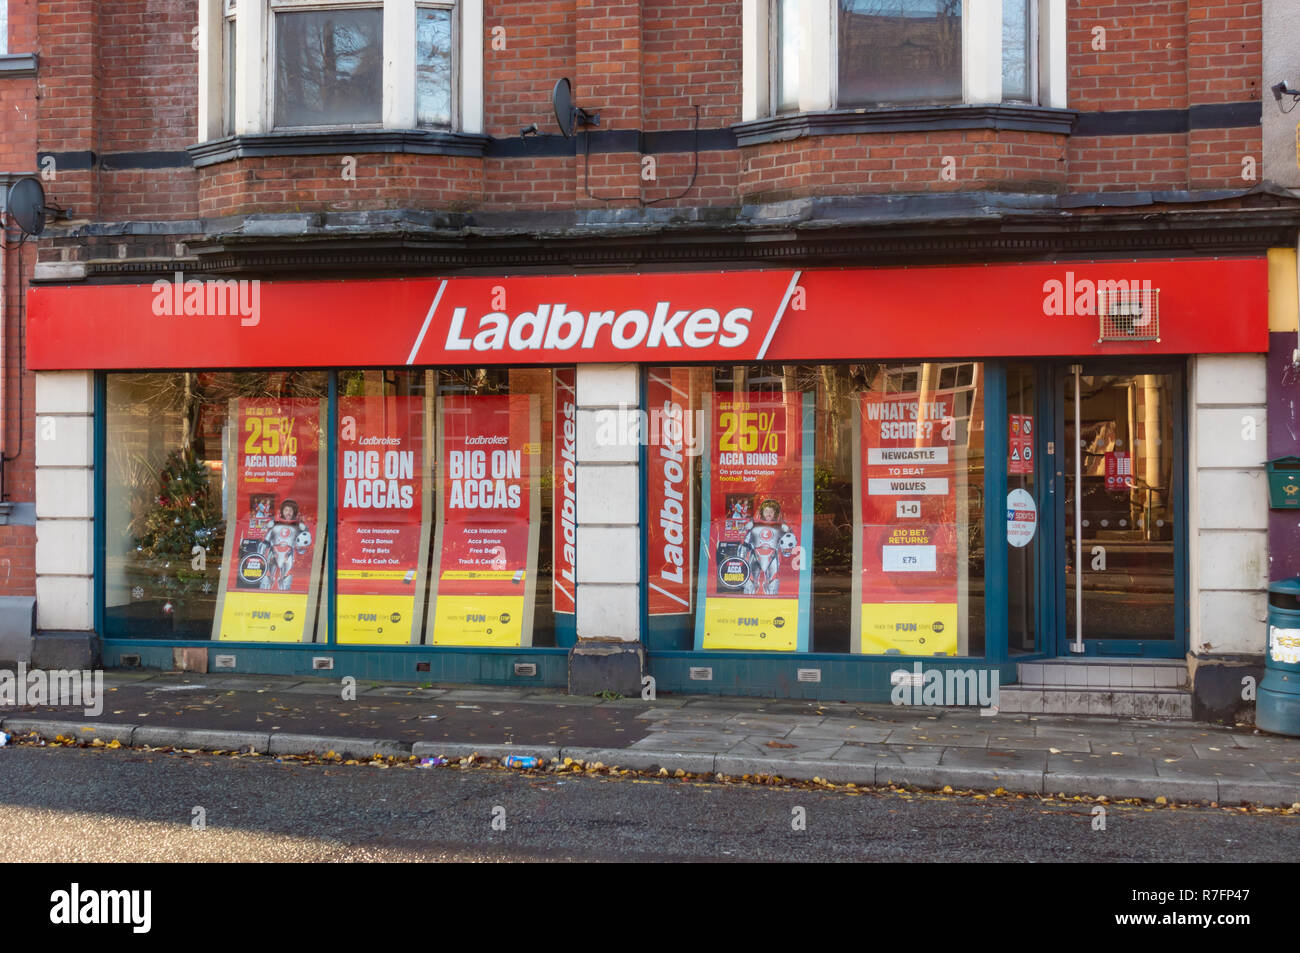 Ladbrokes betting shop in Radcliffe, Manchester. - Stock Image